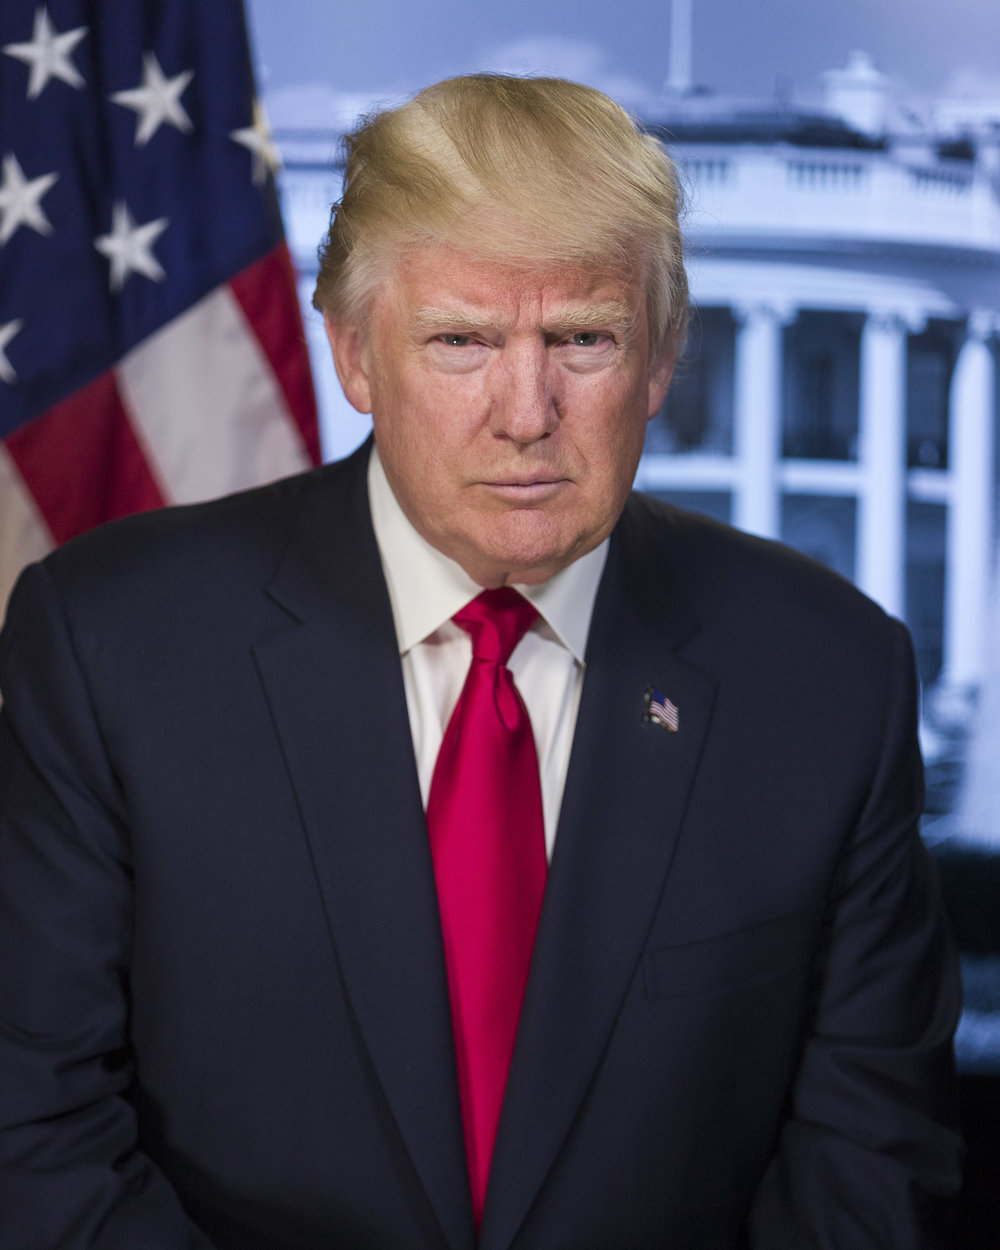 President Donald J. Trump's official White House photographic portrait by Doug Coulter.